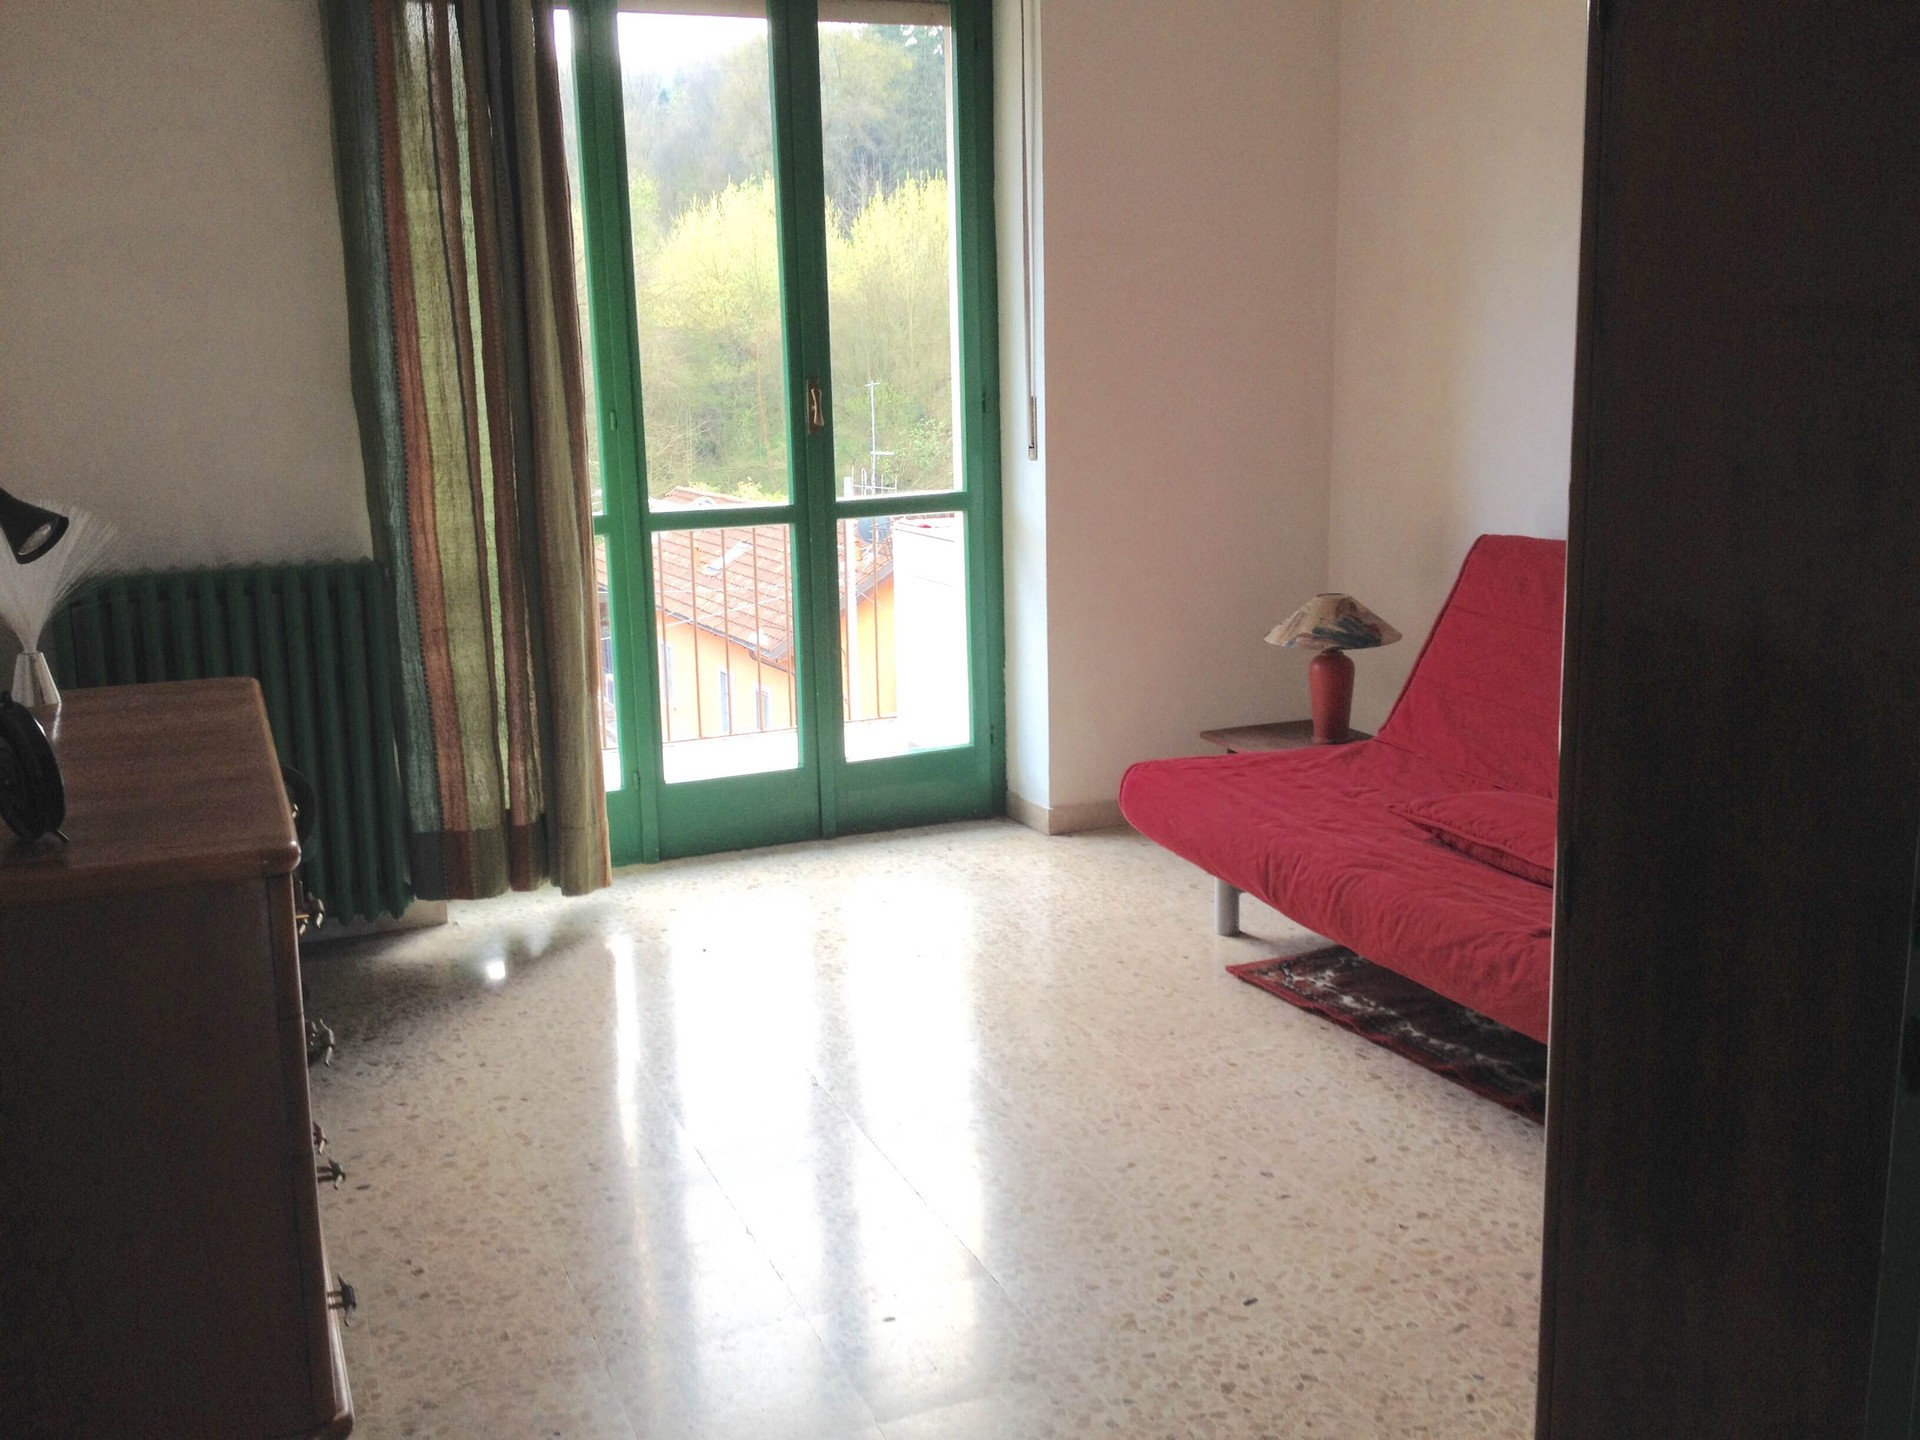 Bright Room With Nice Views Room For Rent Torino